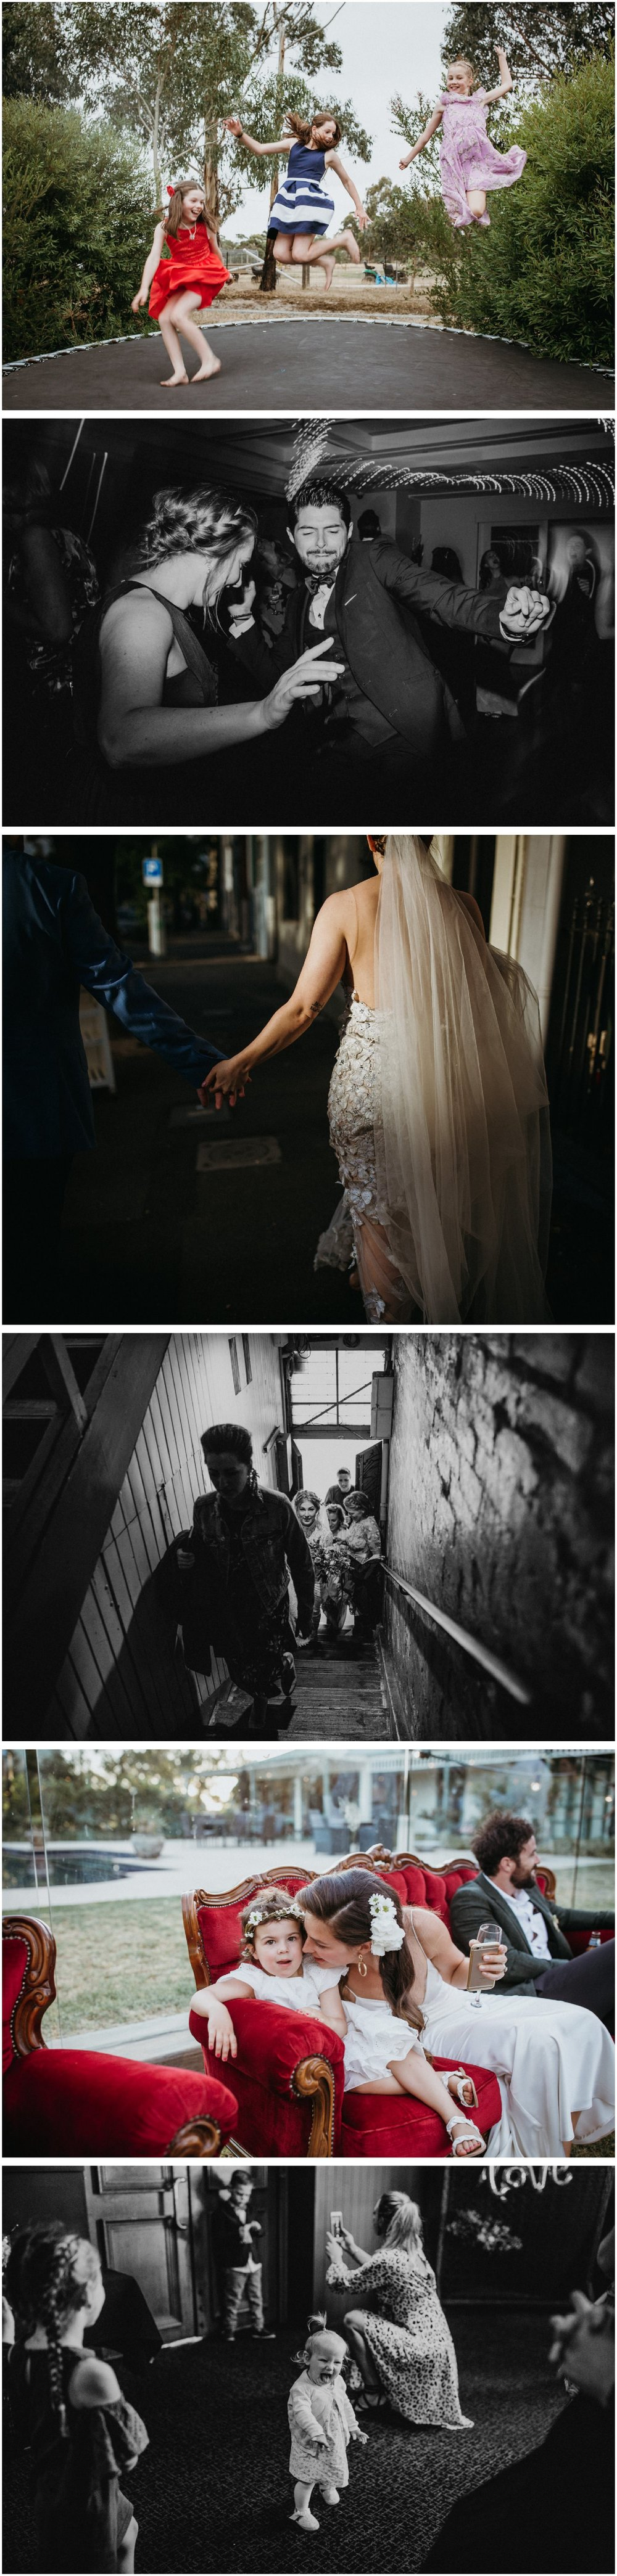 Melbourne Wedding Photographer - 2018 in review -766A0577.jpg